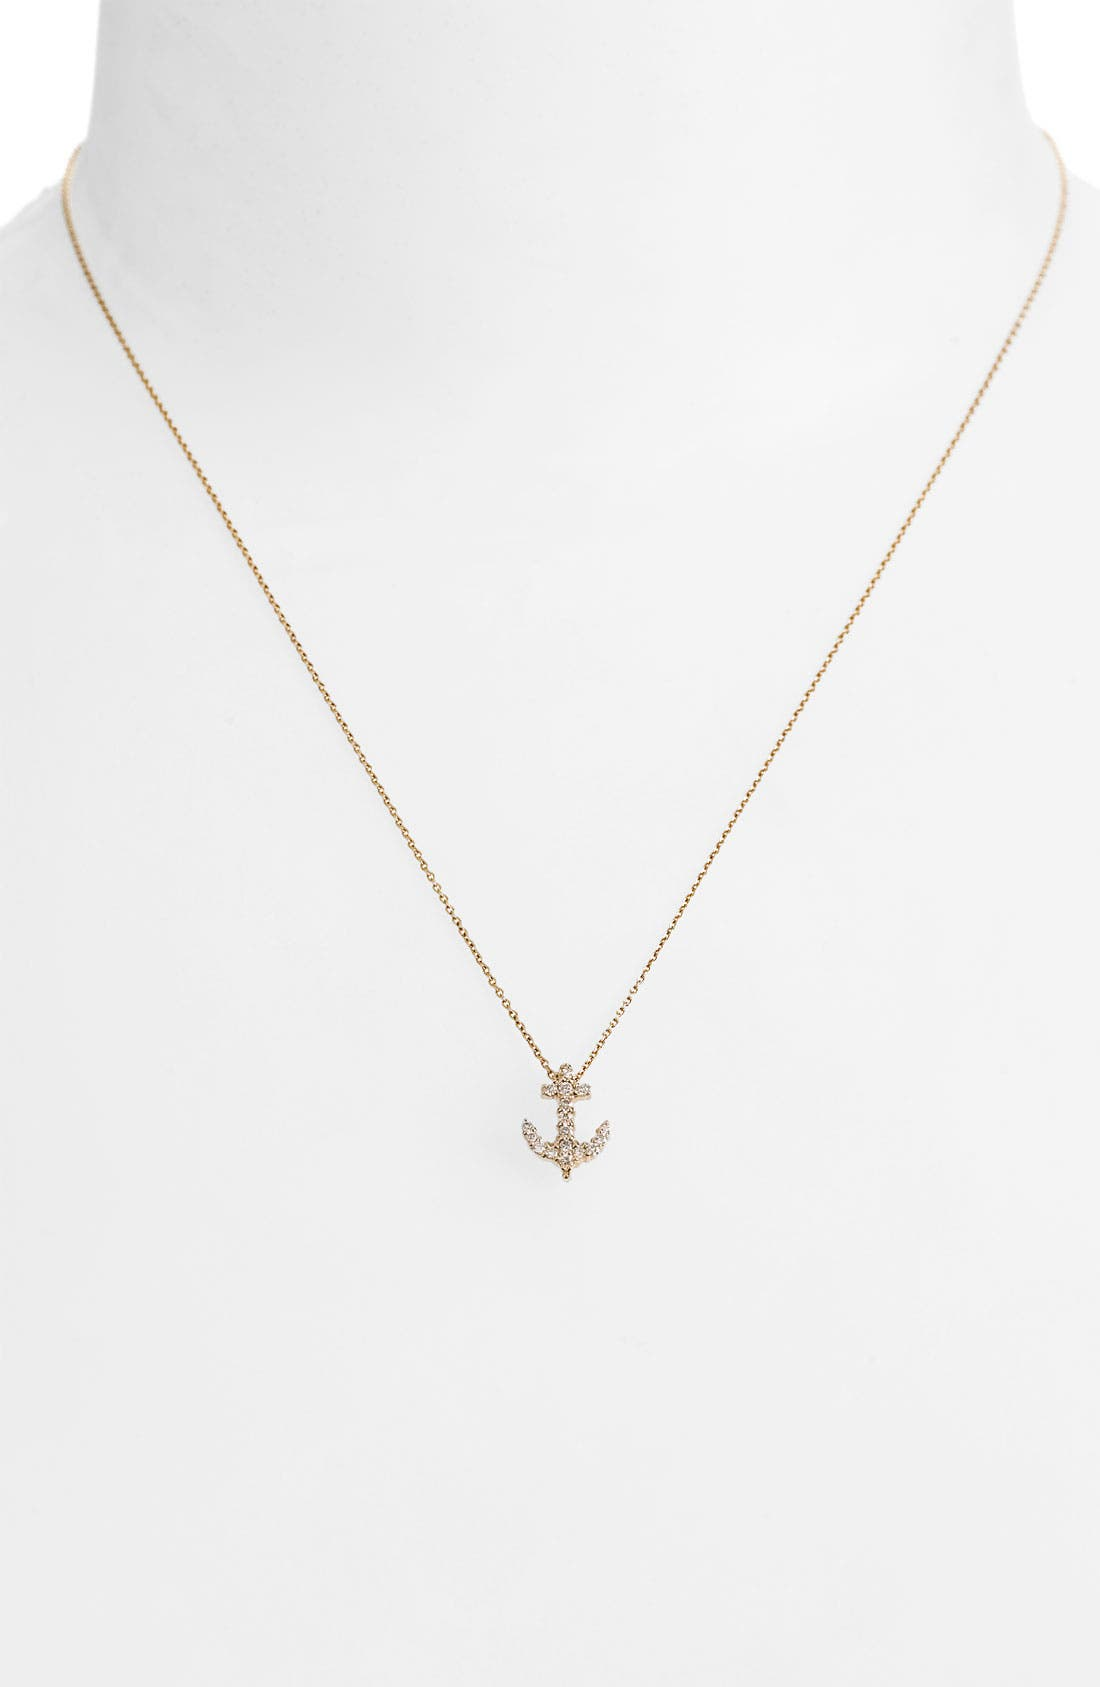 Alternate Image 1 Selected - Roberto Coin 'Tiny Treasures' Baby Anchor Necklace